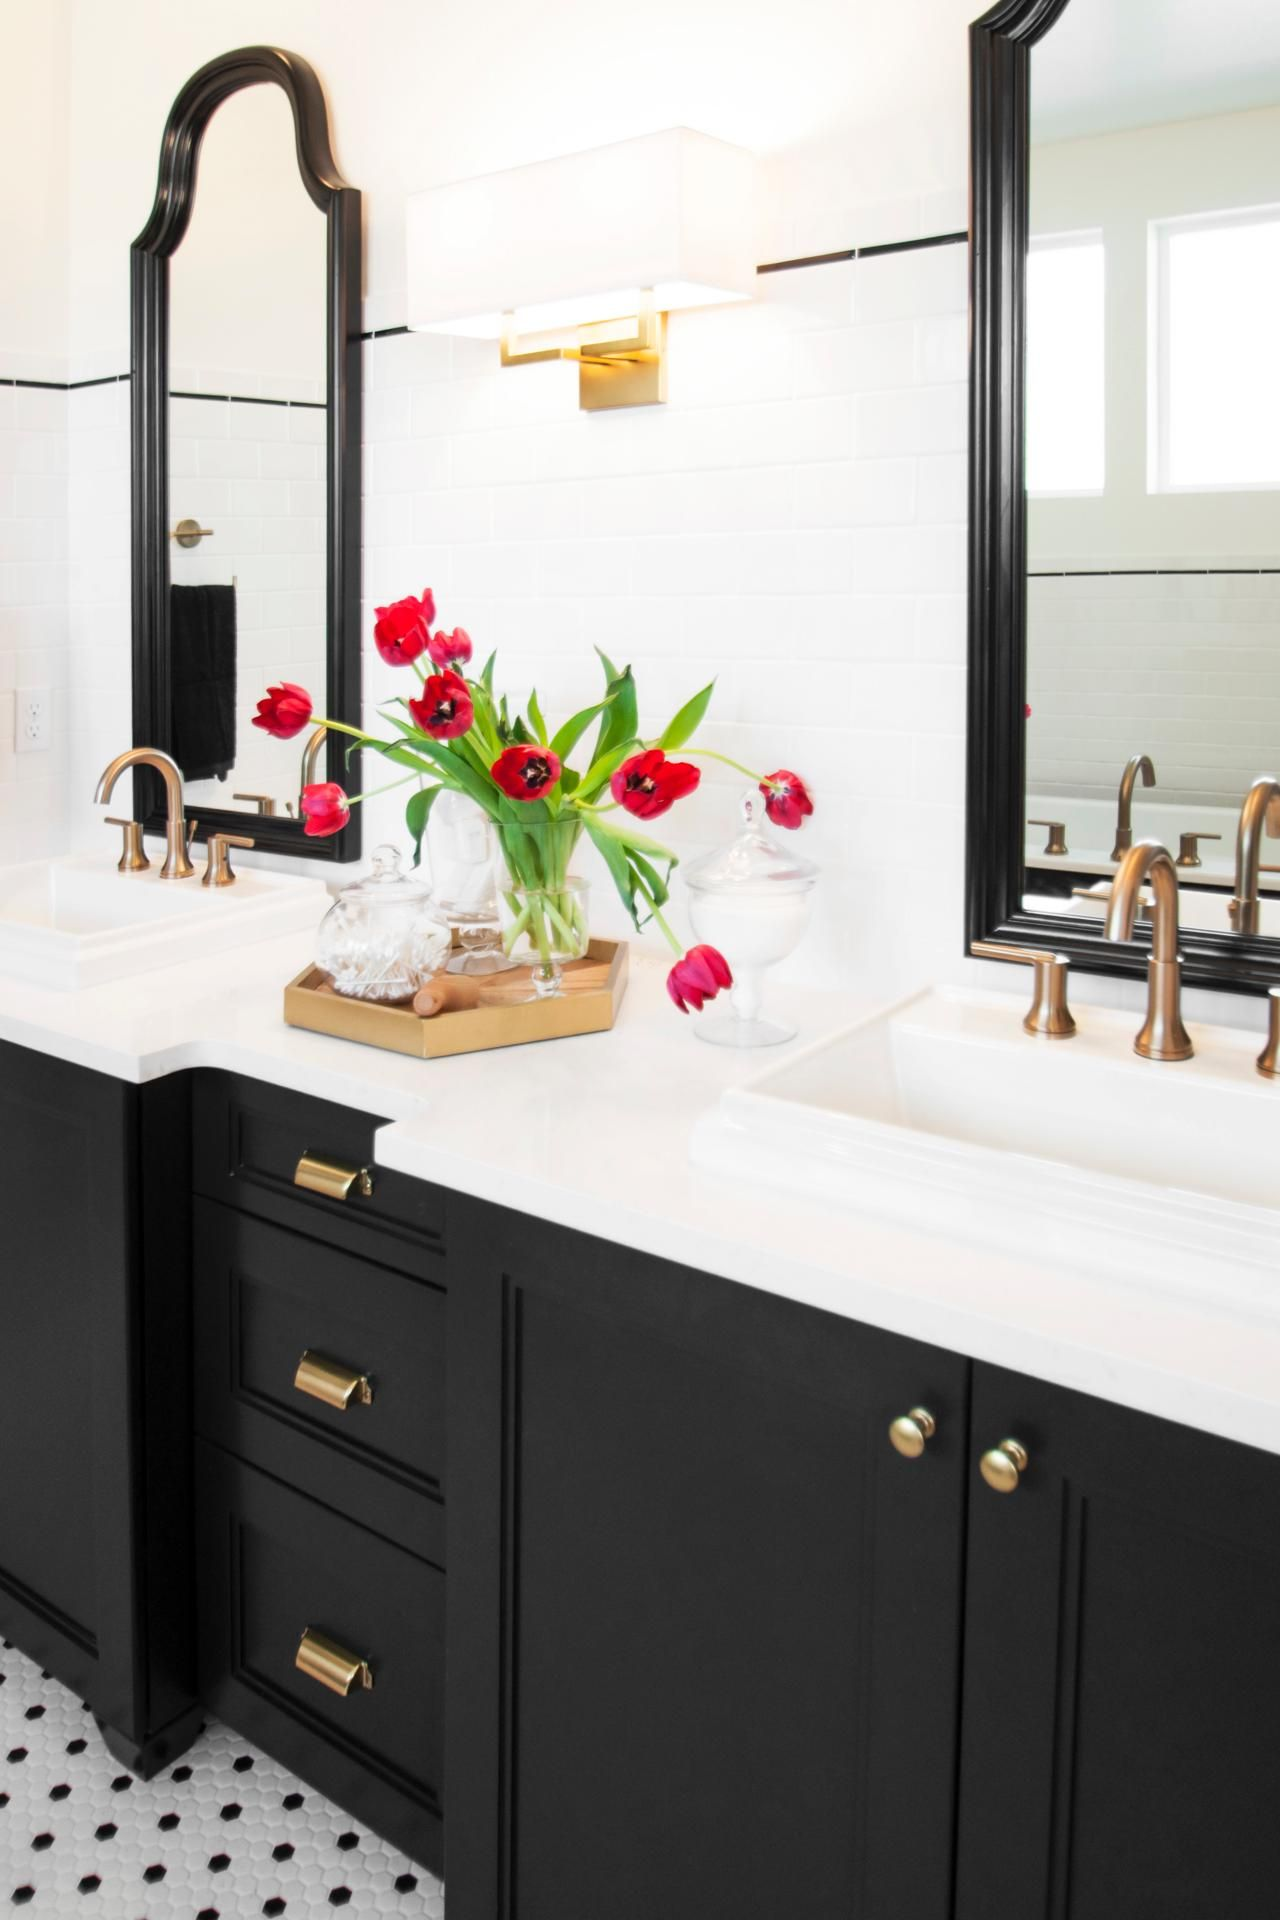 Budget Remodeling Ideas: Black + White Tile Patterns | Crystal vase ...